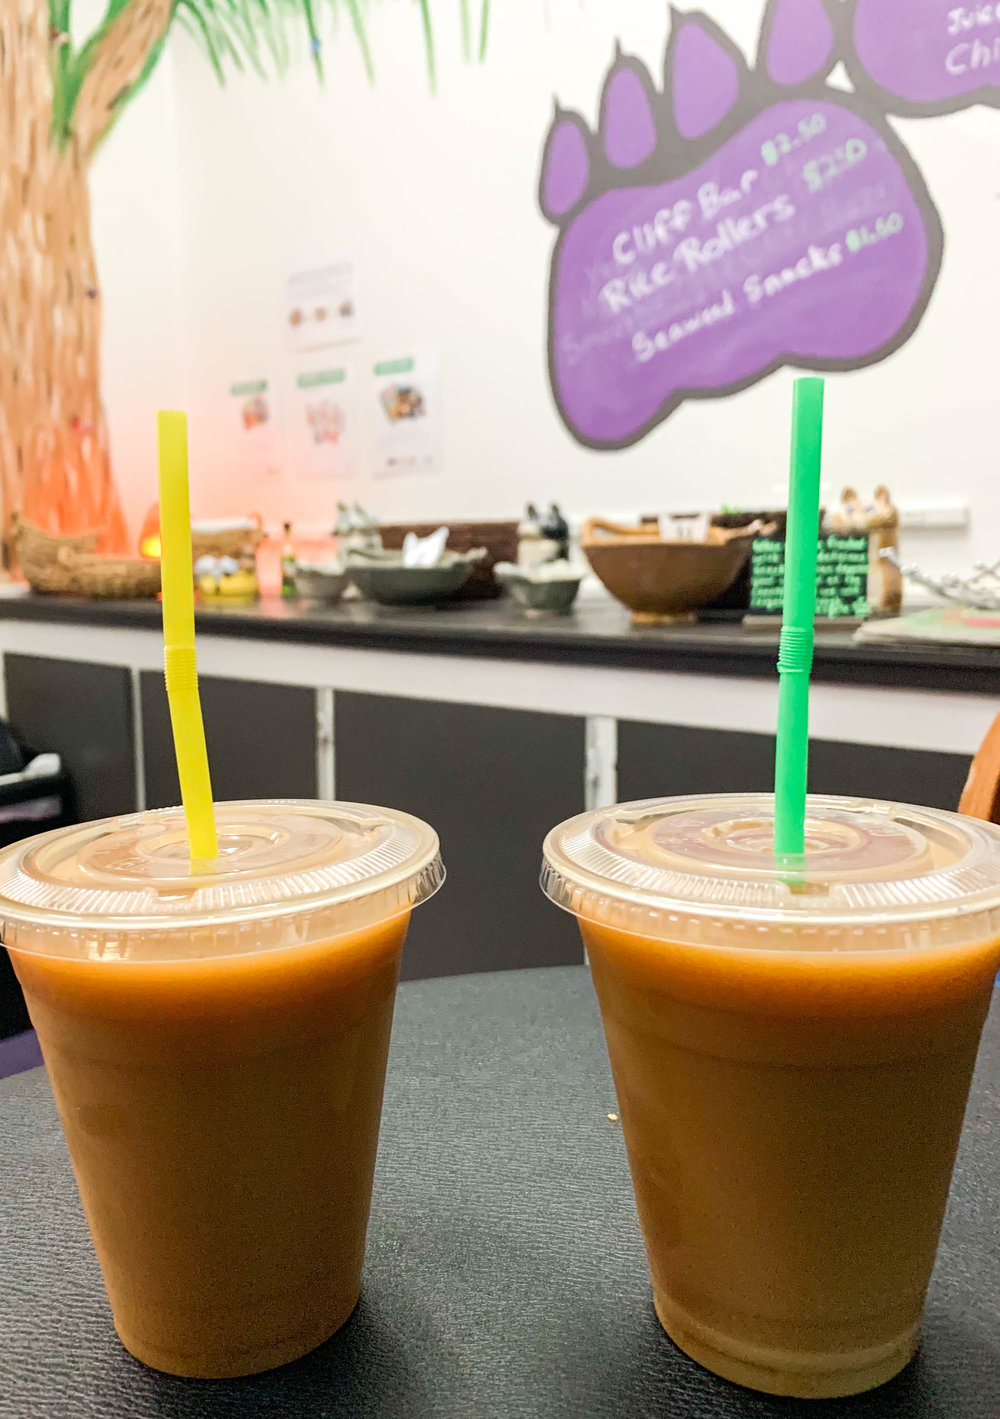 An organic drink was included in the price of admission to the cafe.